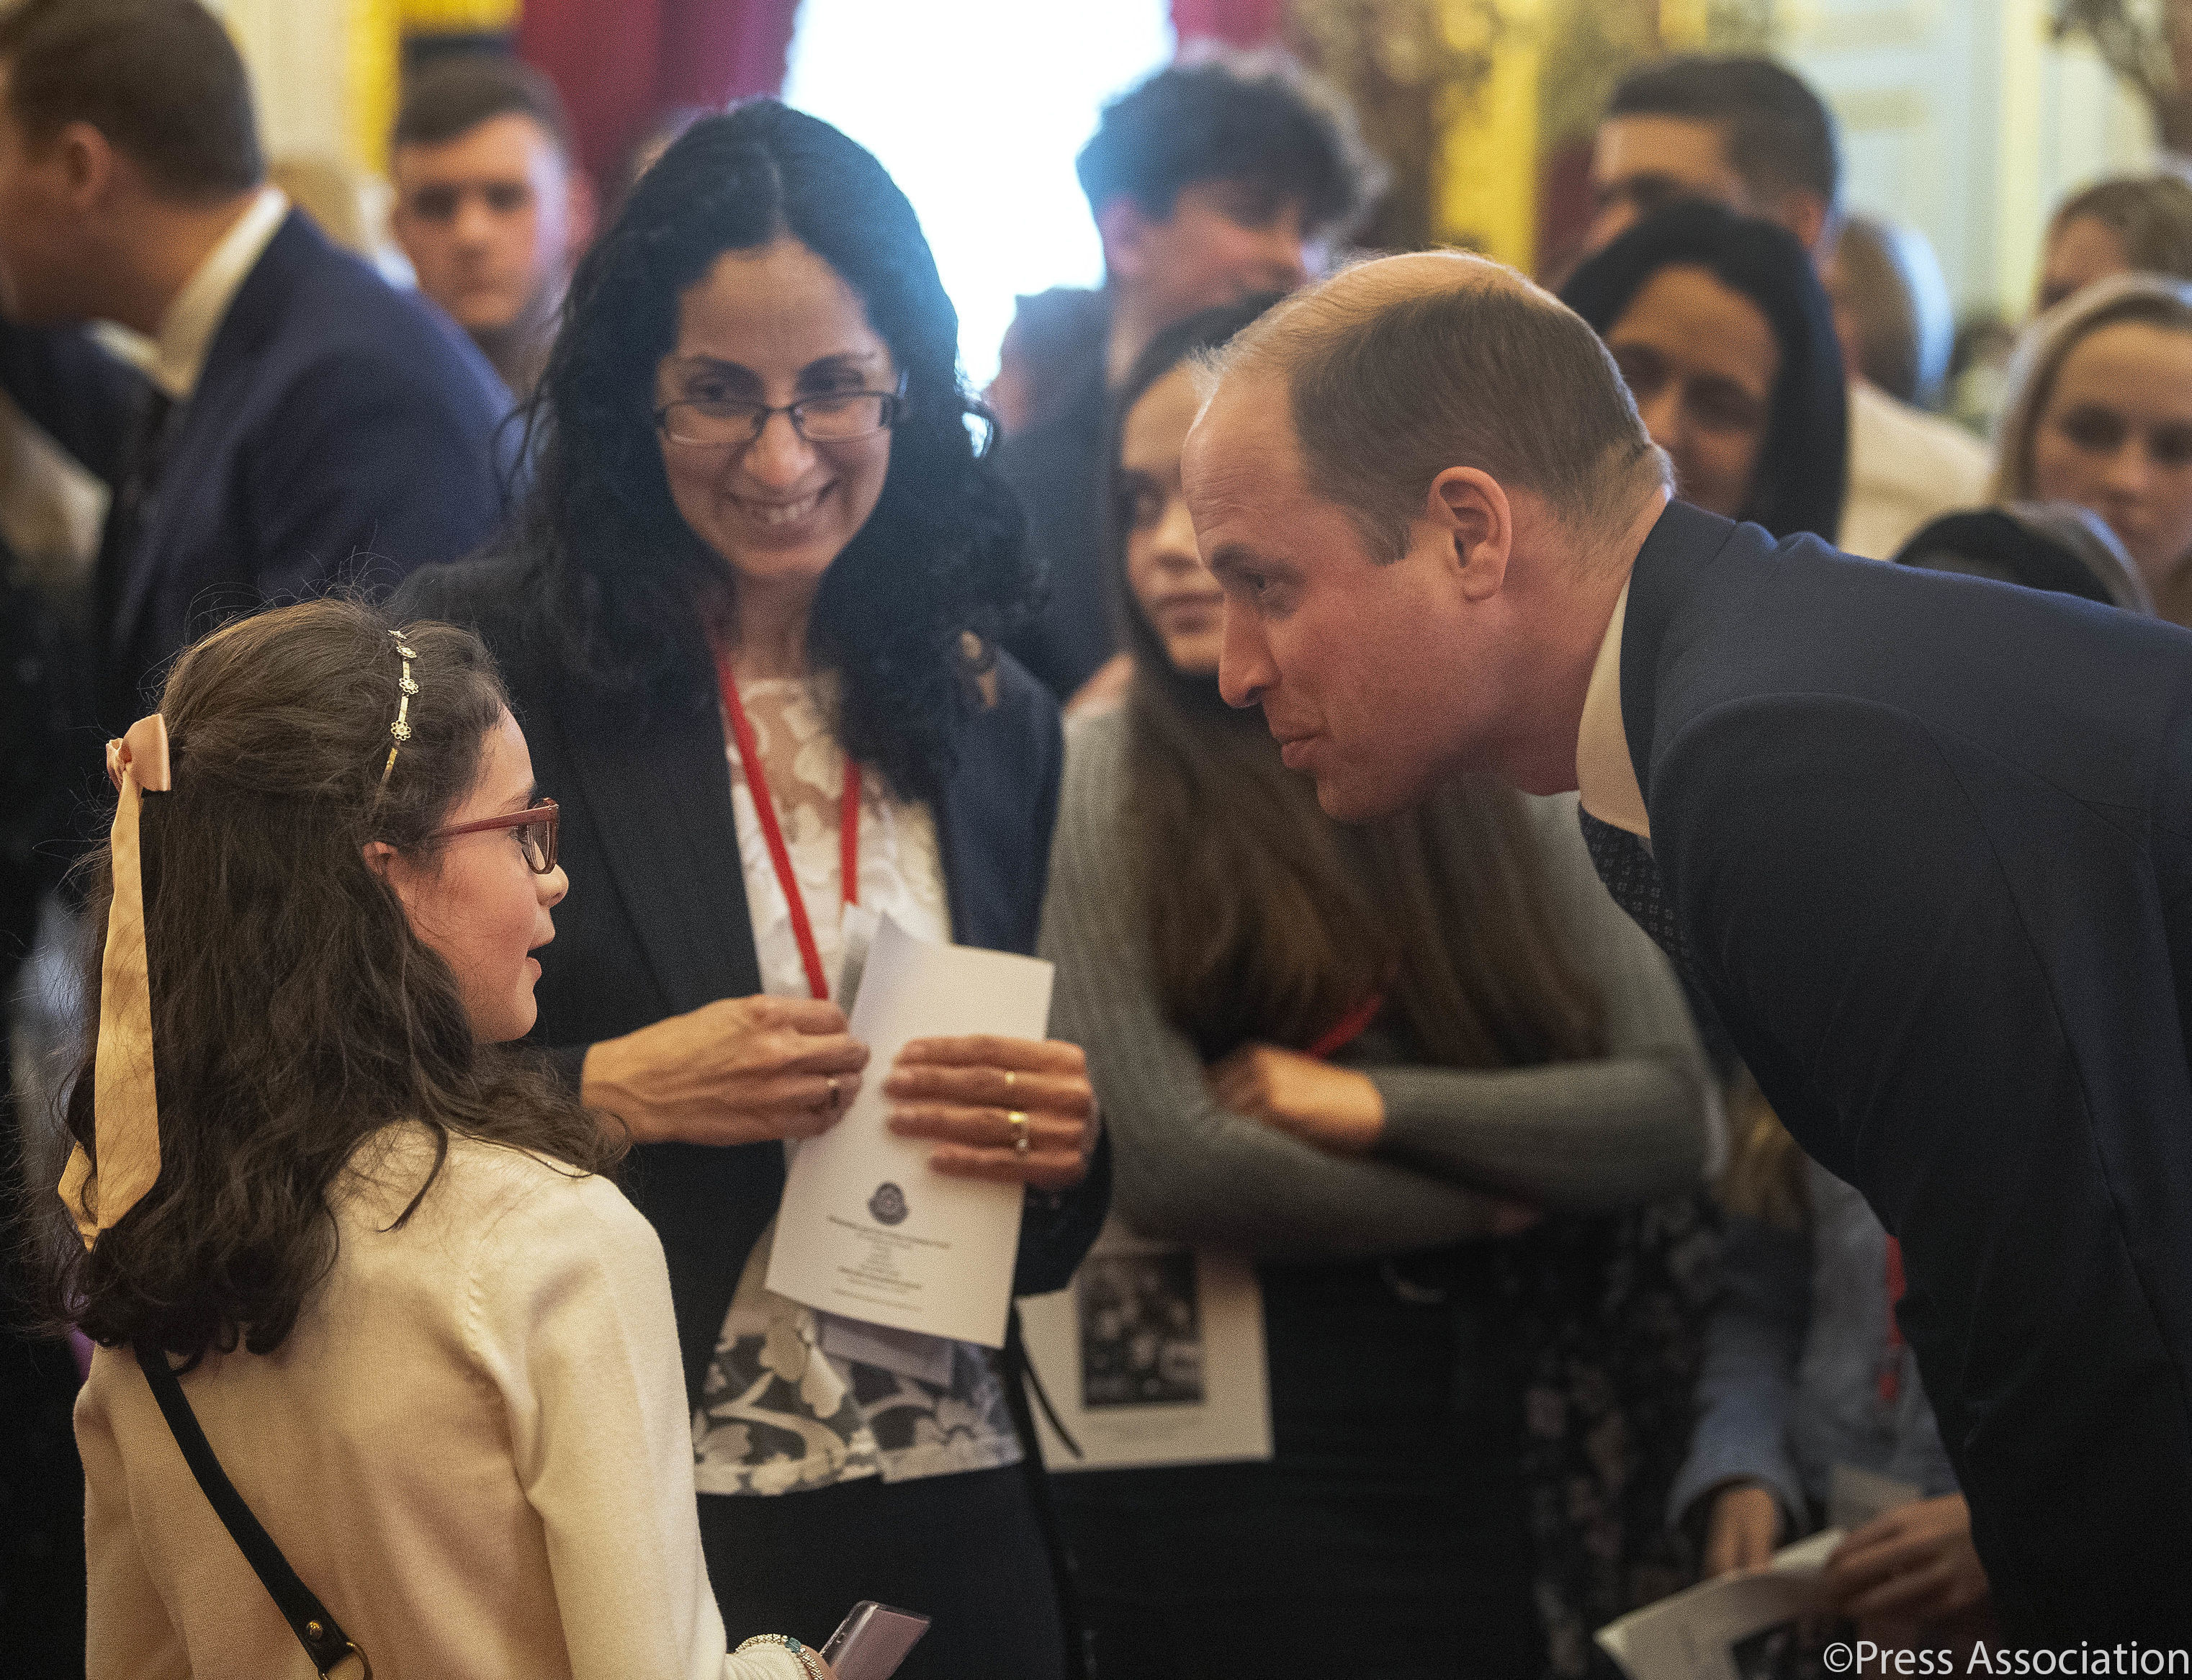 The Duke of Cambridge marks the 150th anniversary of the Metropolitan and City Police Orphans Fund